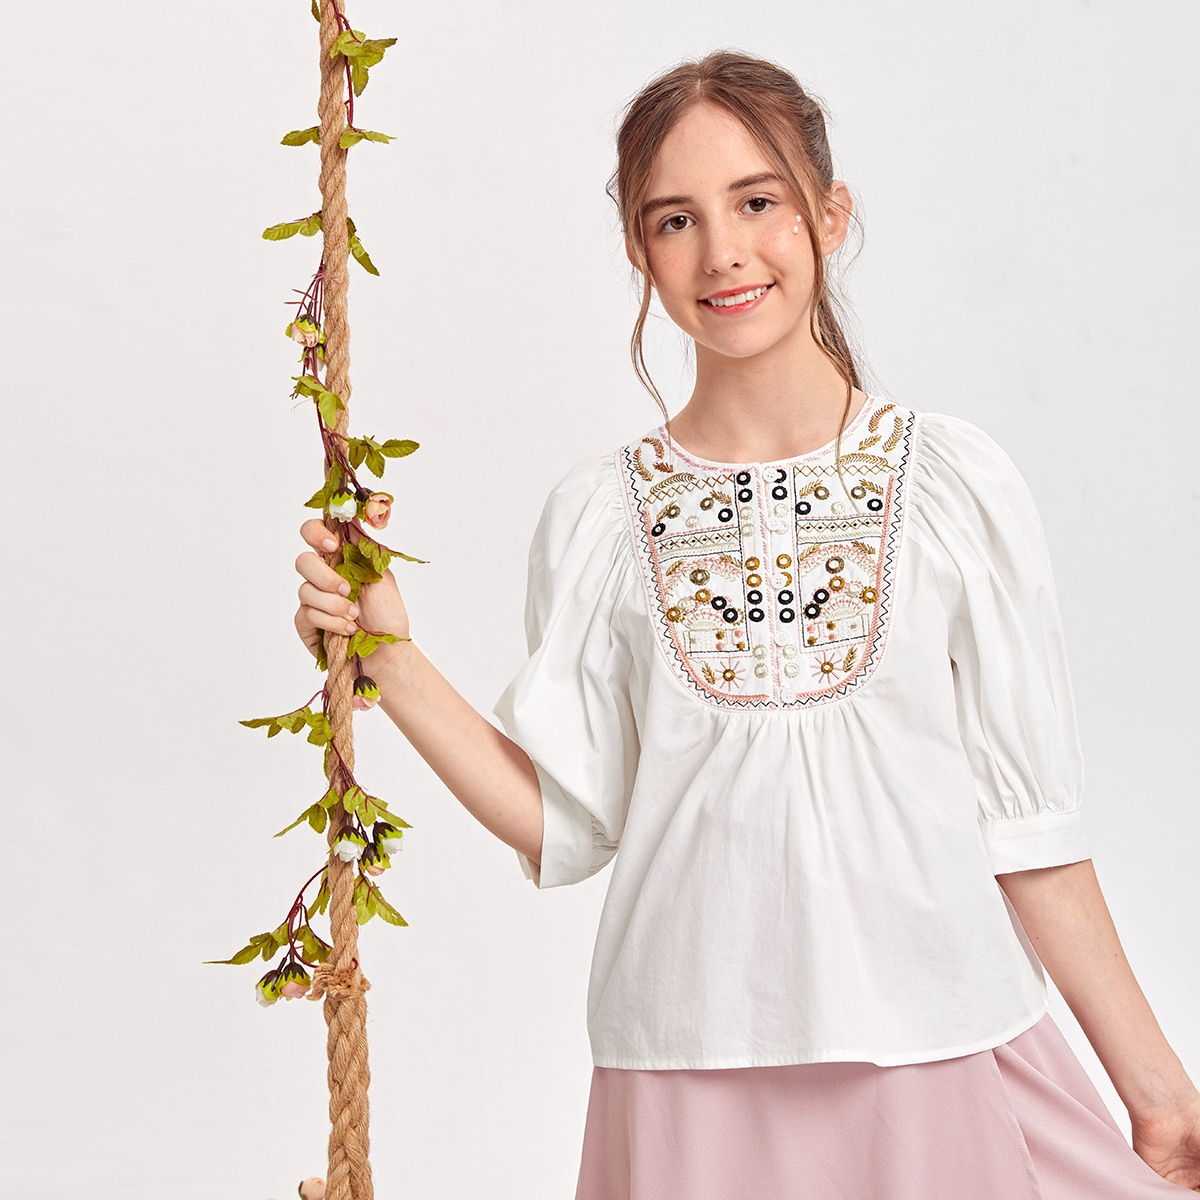 Teen Girls Floral Embroidered Puff Sleeve Top